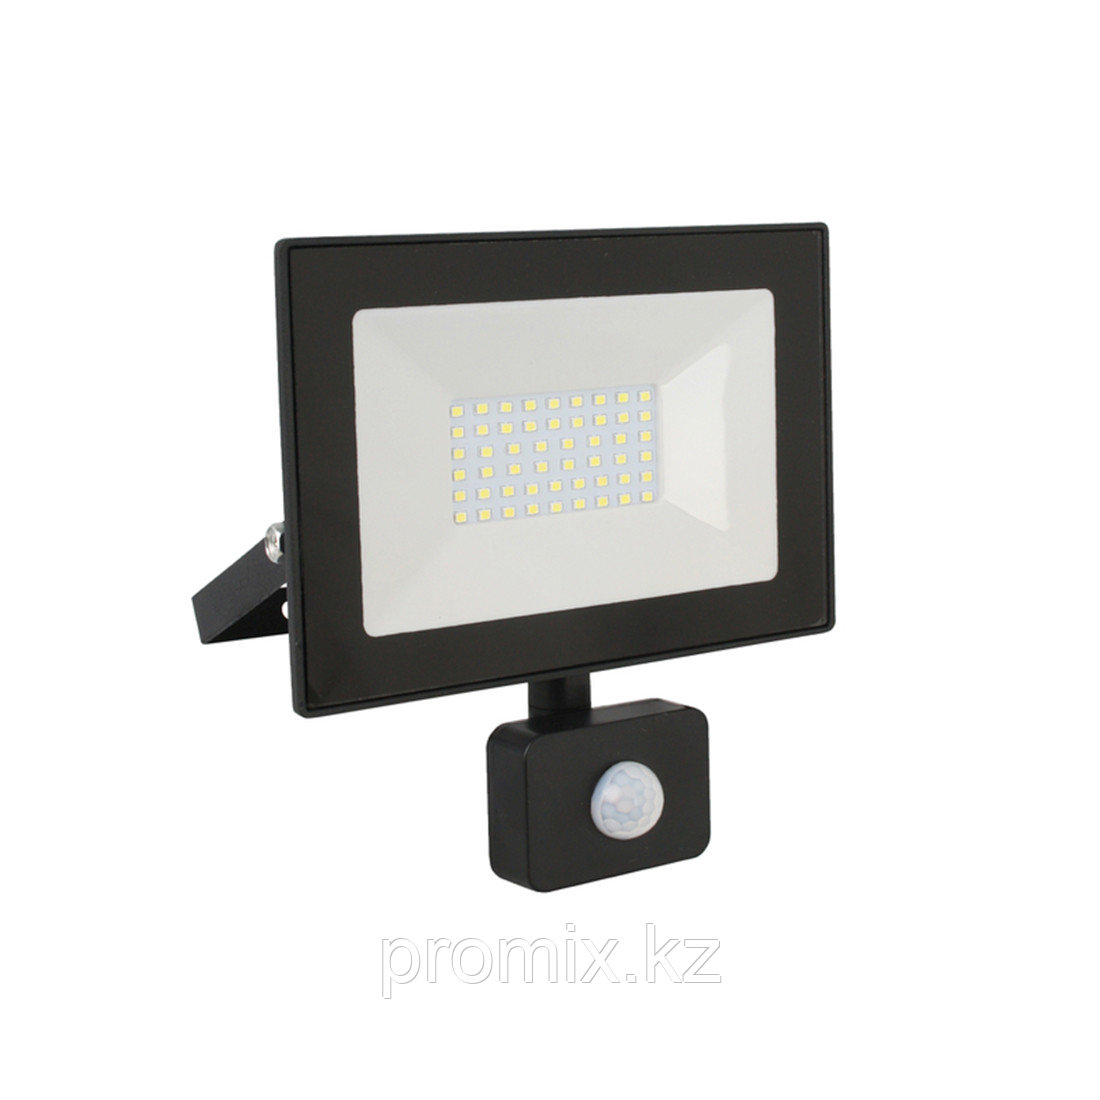 Прожектор LED с датчиком Ultraflash LFL-5002S C02 (50Вт., 6500К)